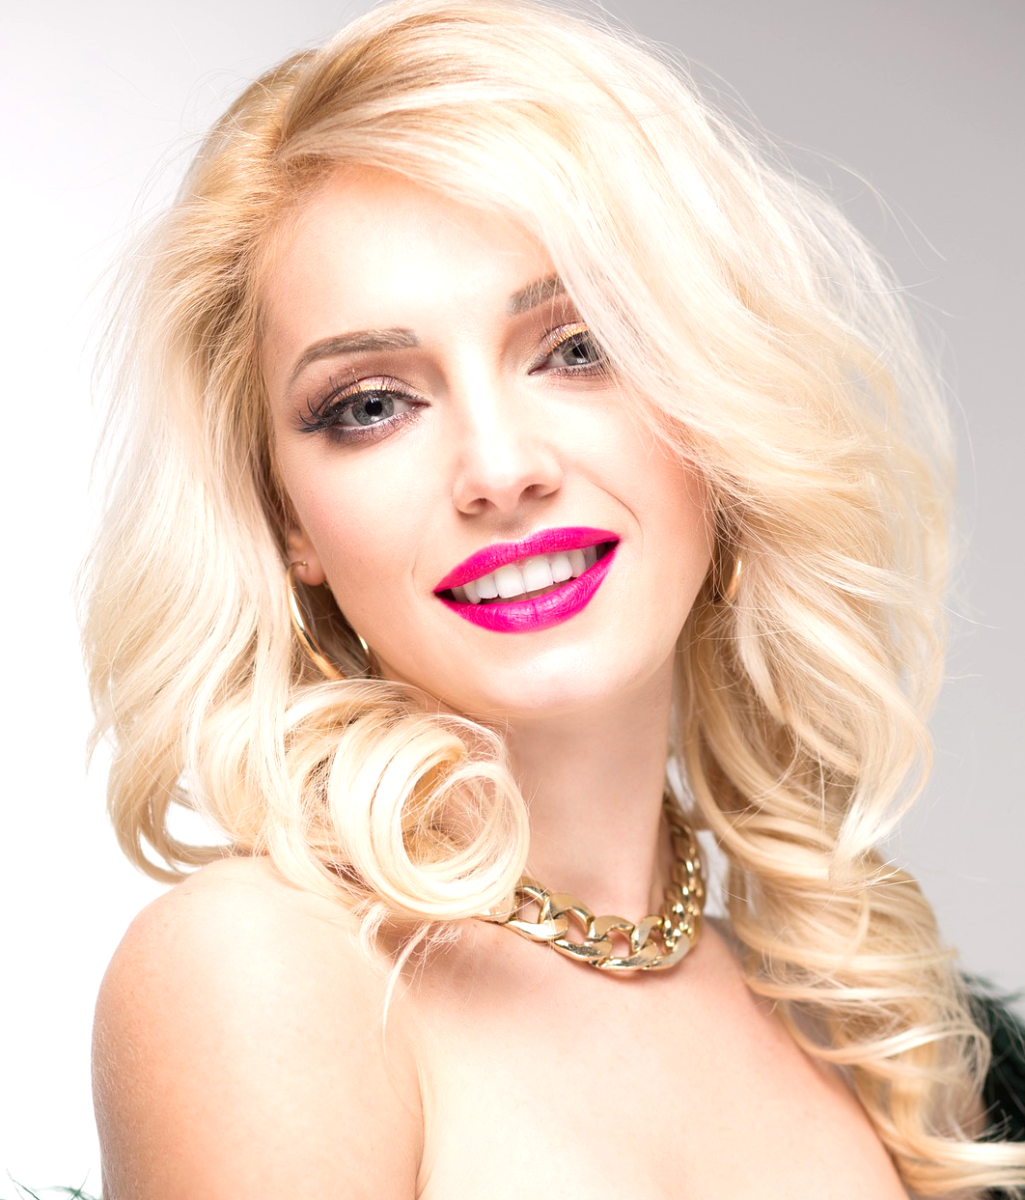 If you're blonde, you may find cool ash or beige tones more flattering than brown, which can have an aging effect.